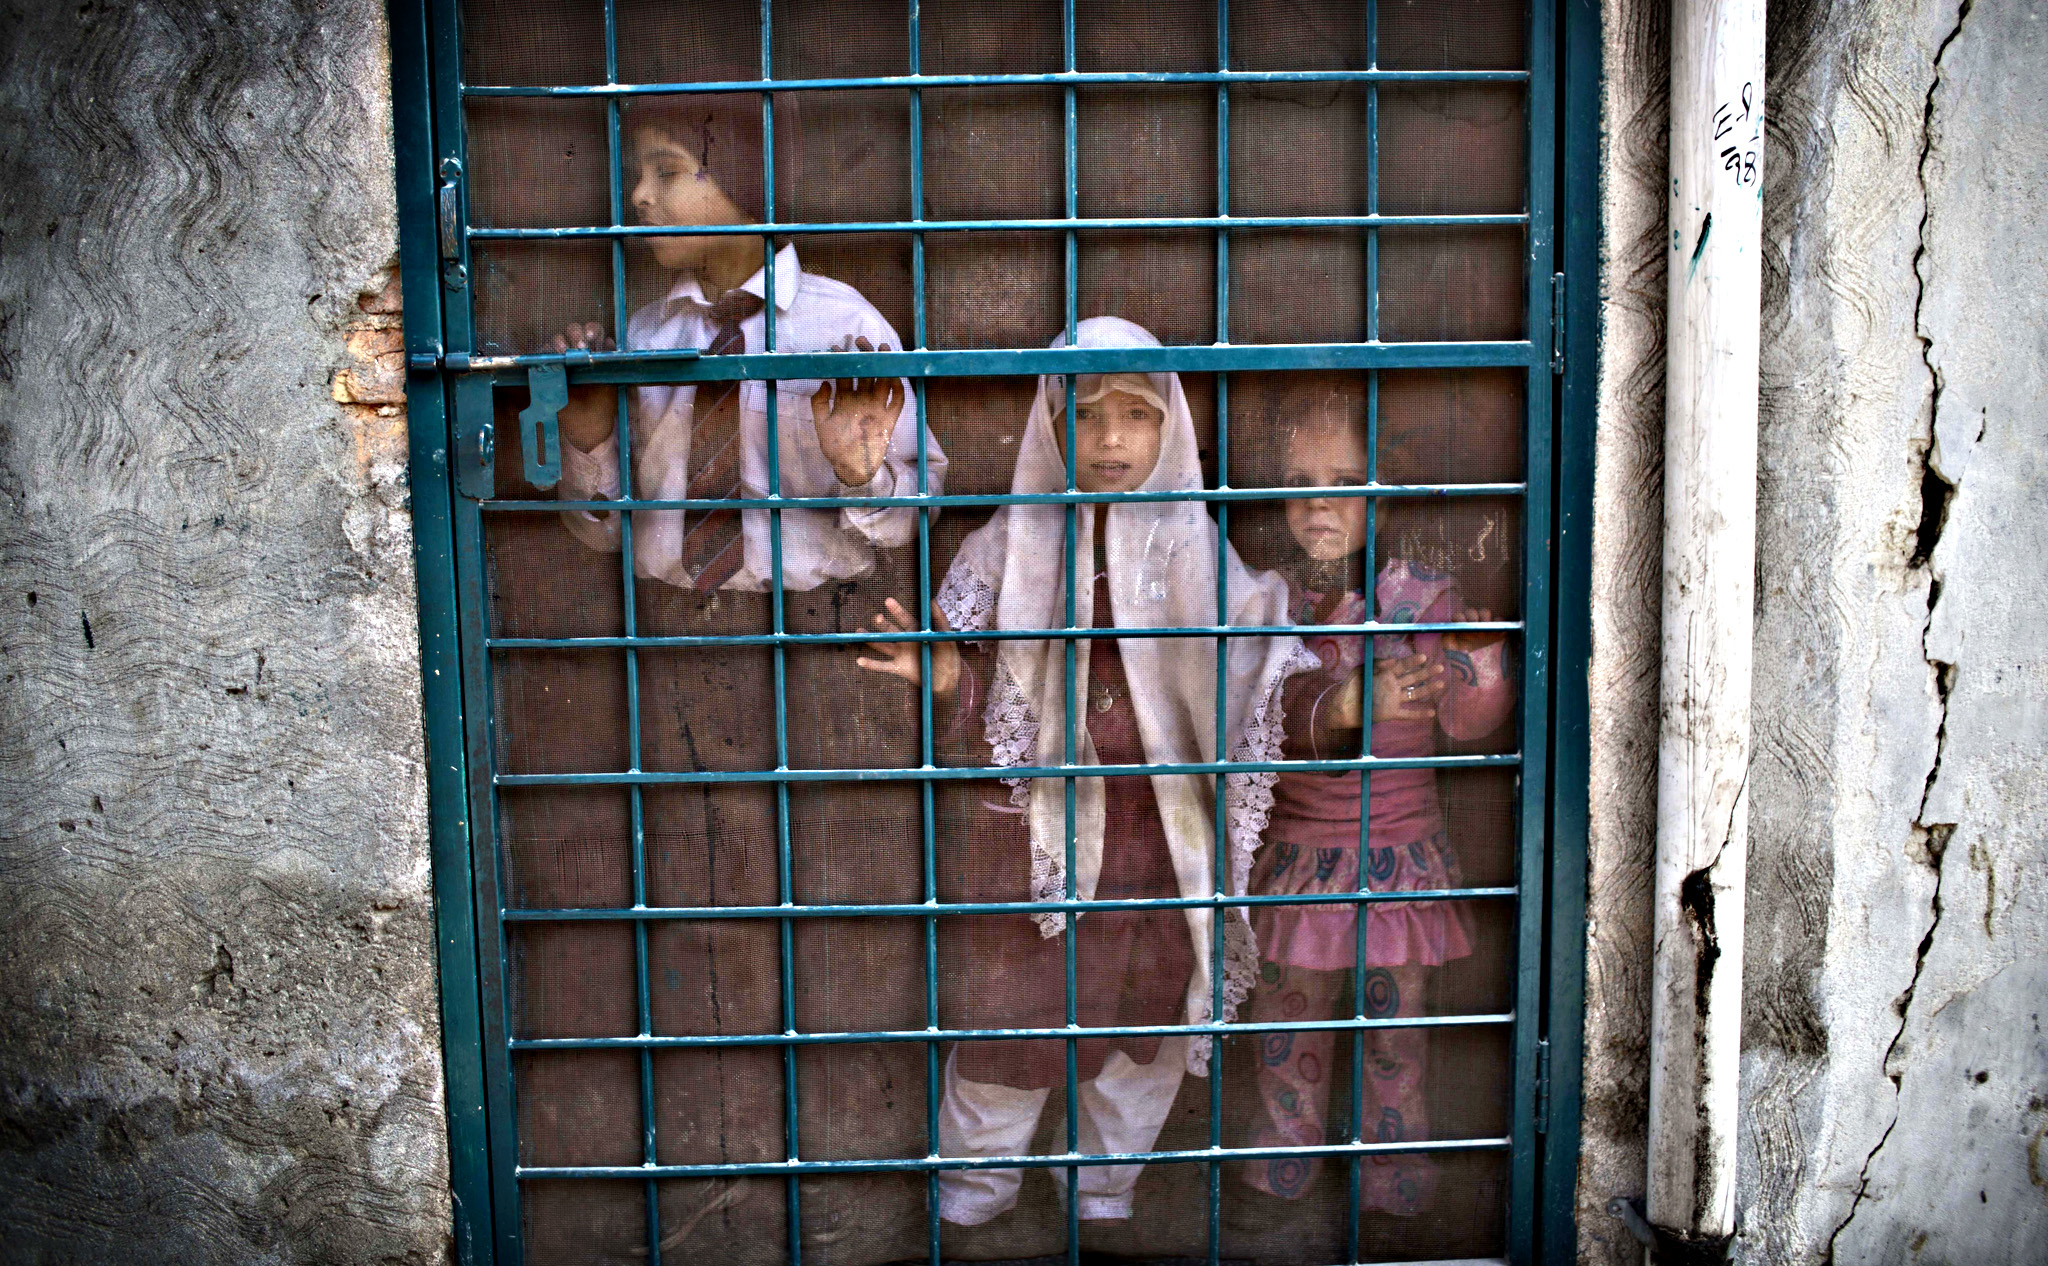 Pakistani schoolchildren look out the doorway of their school, before a special class about the victims killed in Tuesday's Taliban attack on a military-run school in Peshawar, at Ranrra school in Rawalpindi, Pakistan, Friday, Dec. 19, 2014. Pakistani jets and ground forces killed 67 militants in a northwestern tribal region near the Afghan border, officials said Friday, days after Taliban fighters killed 148 people   most of them children   in a school massacre.